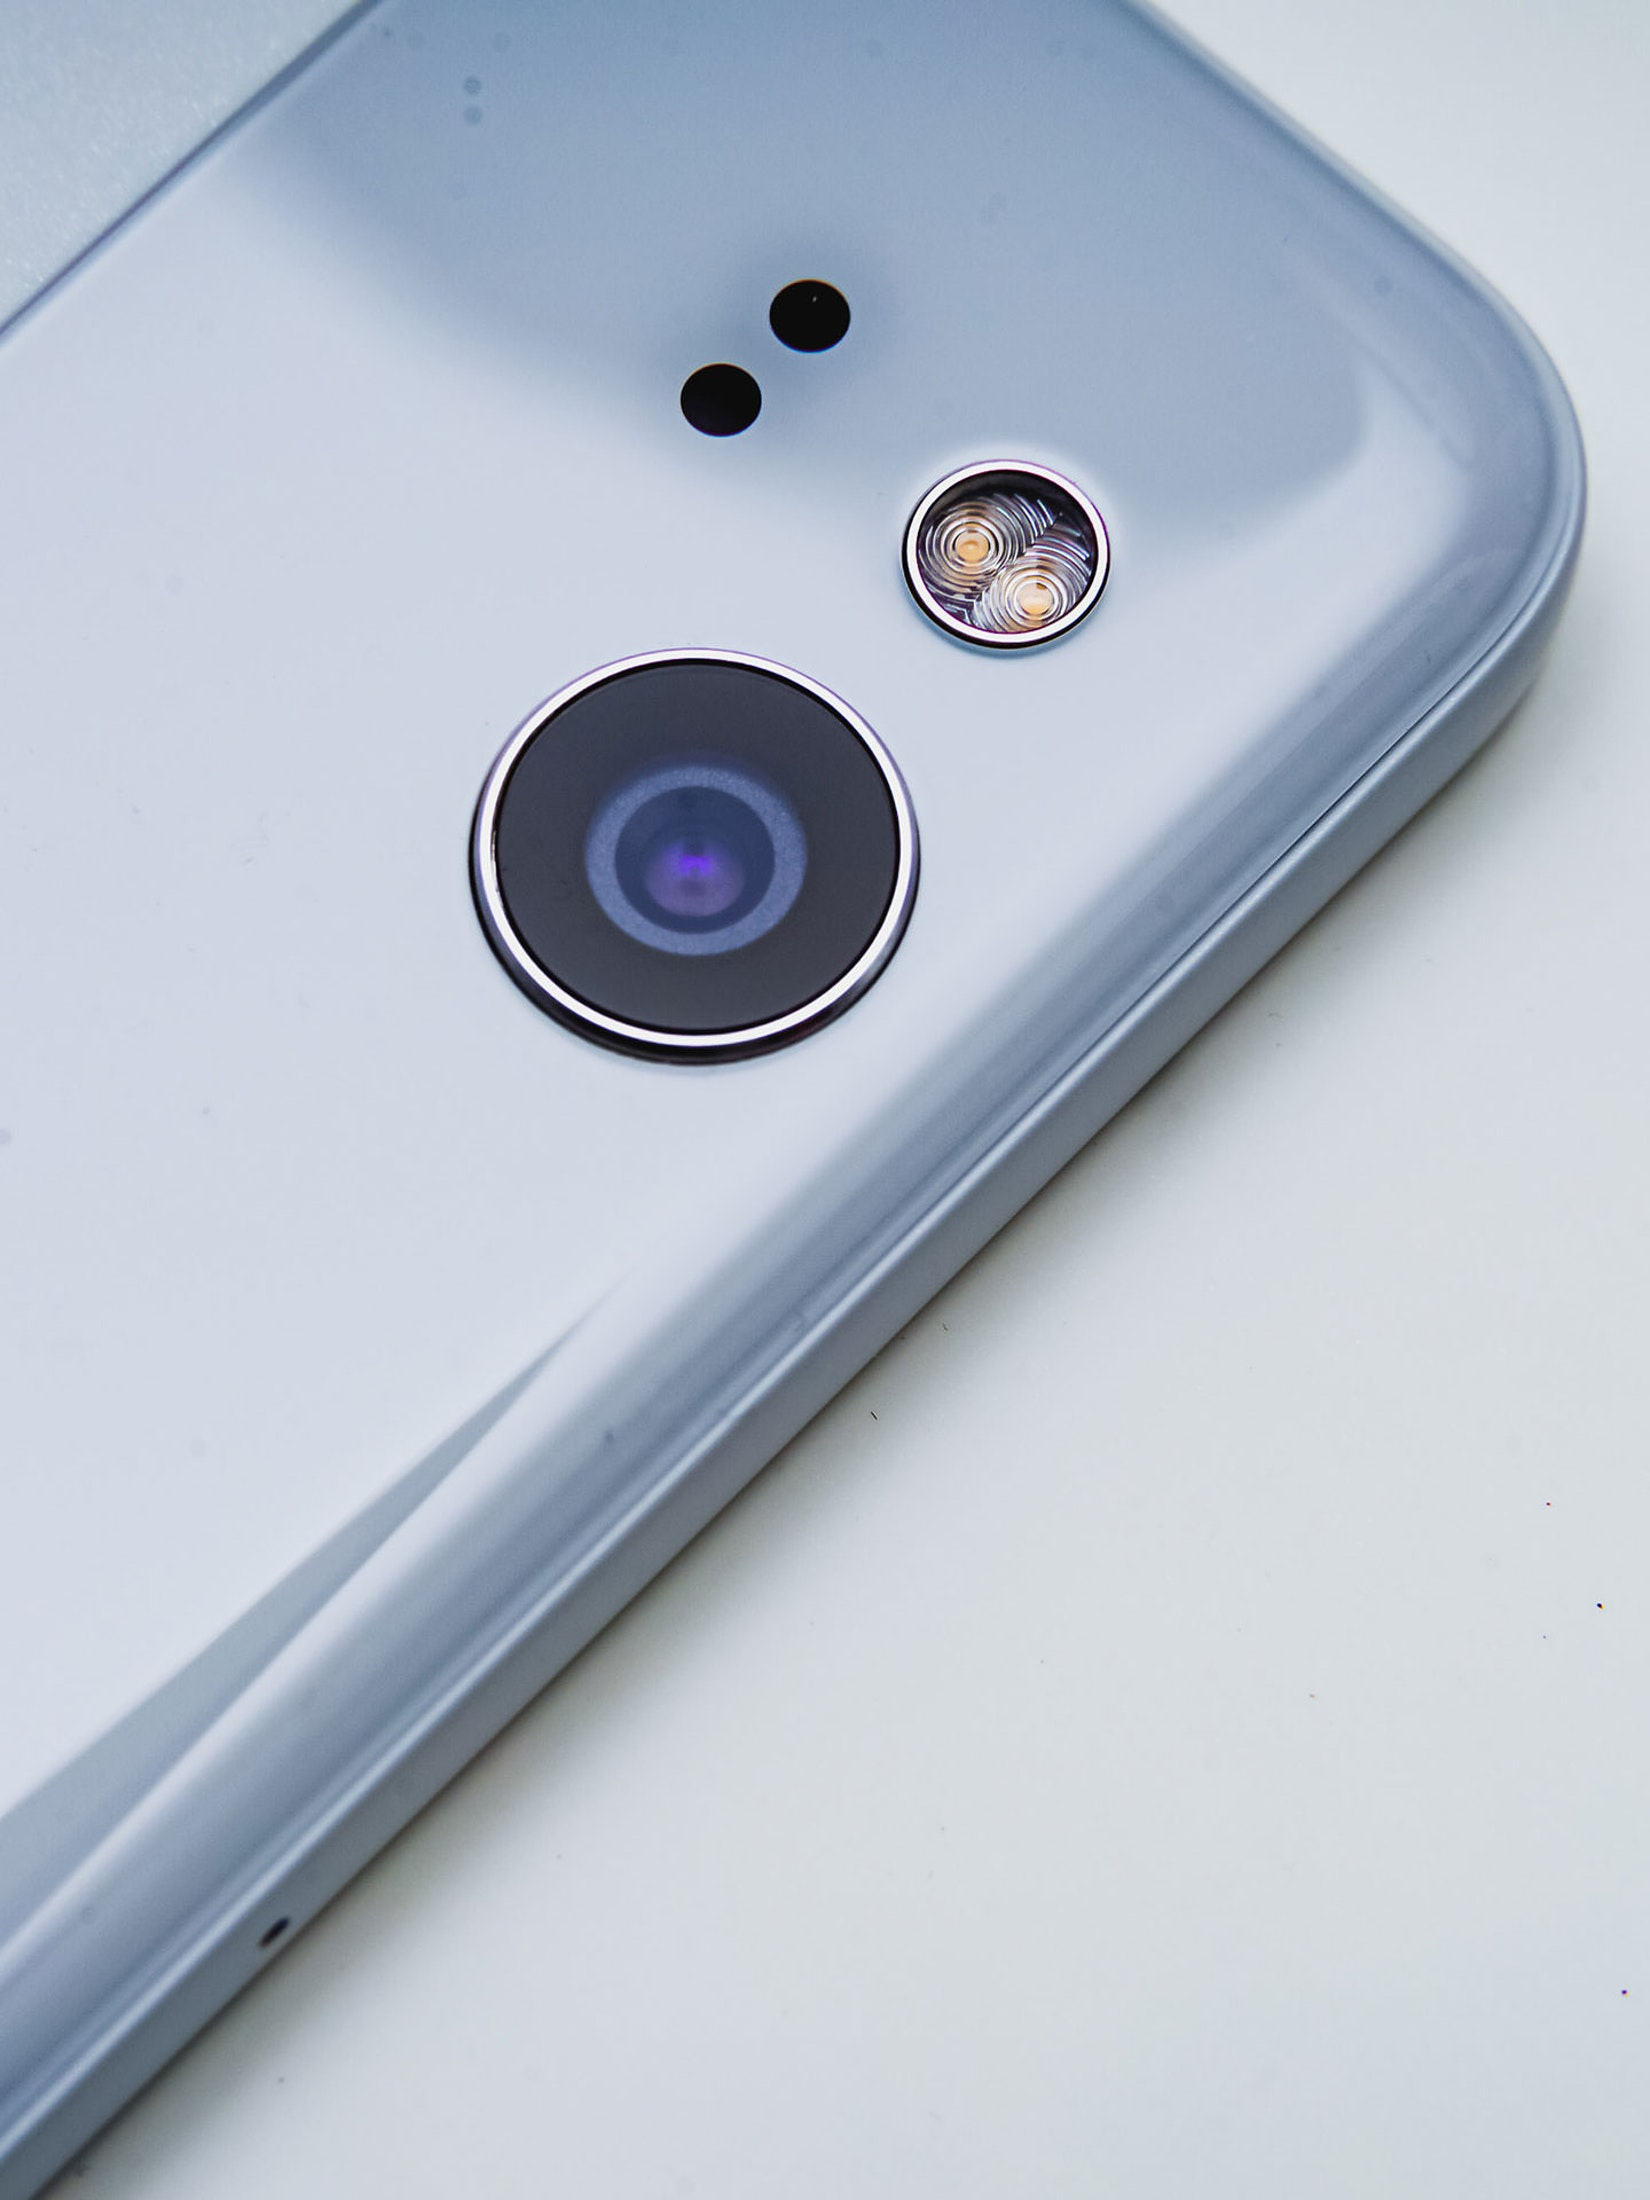 Macro close up of a cell phone camera lens